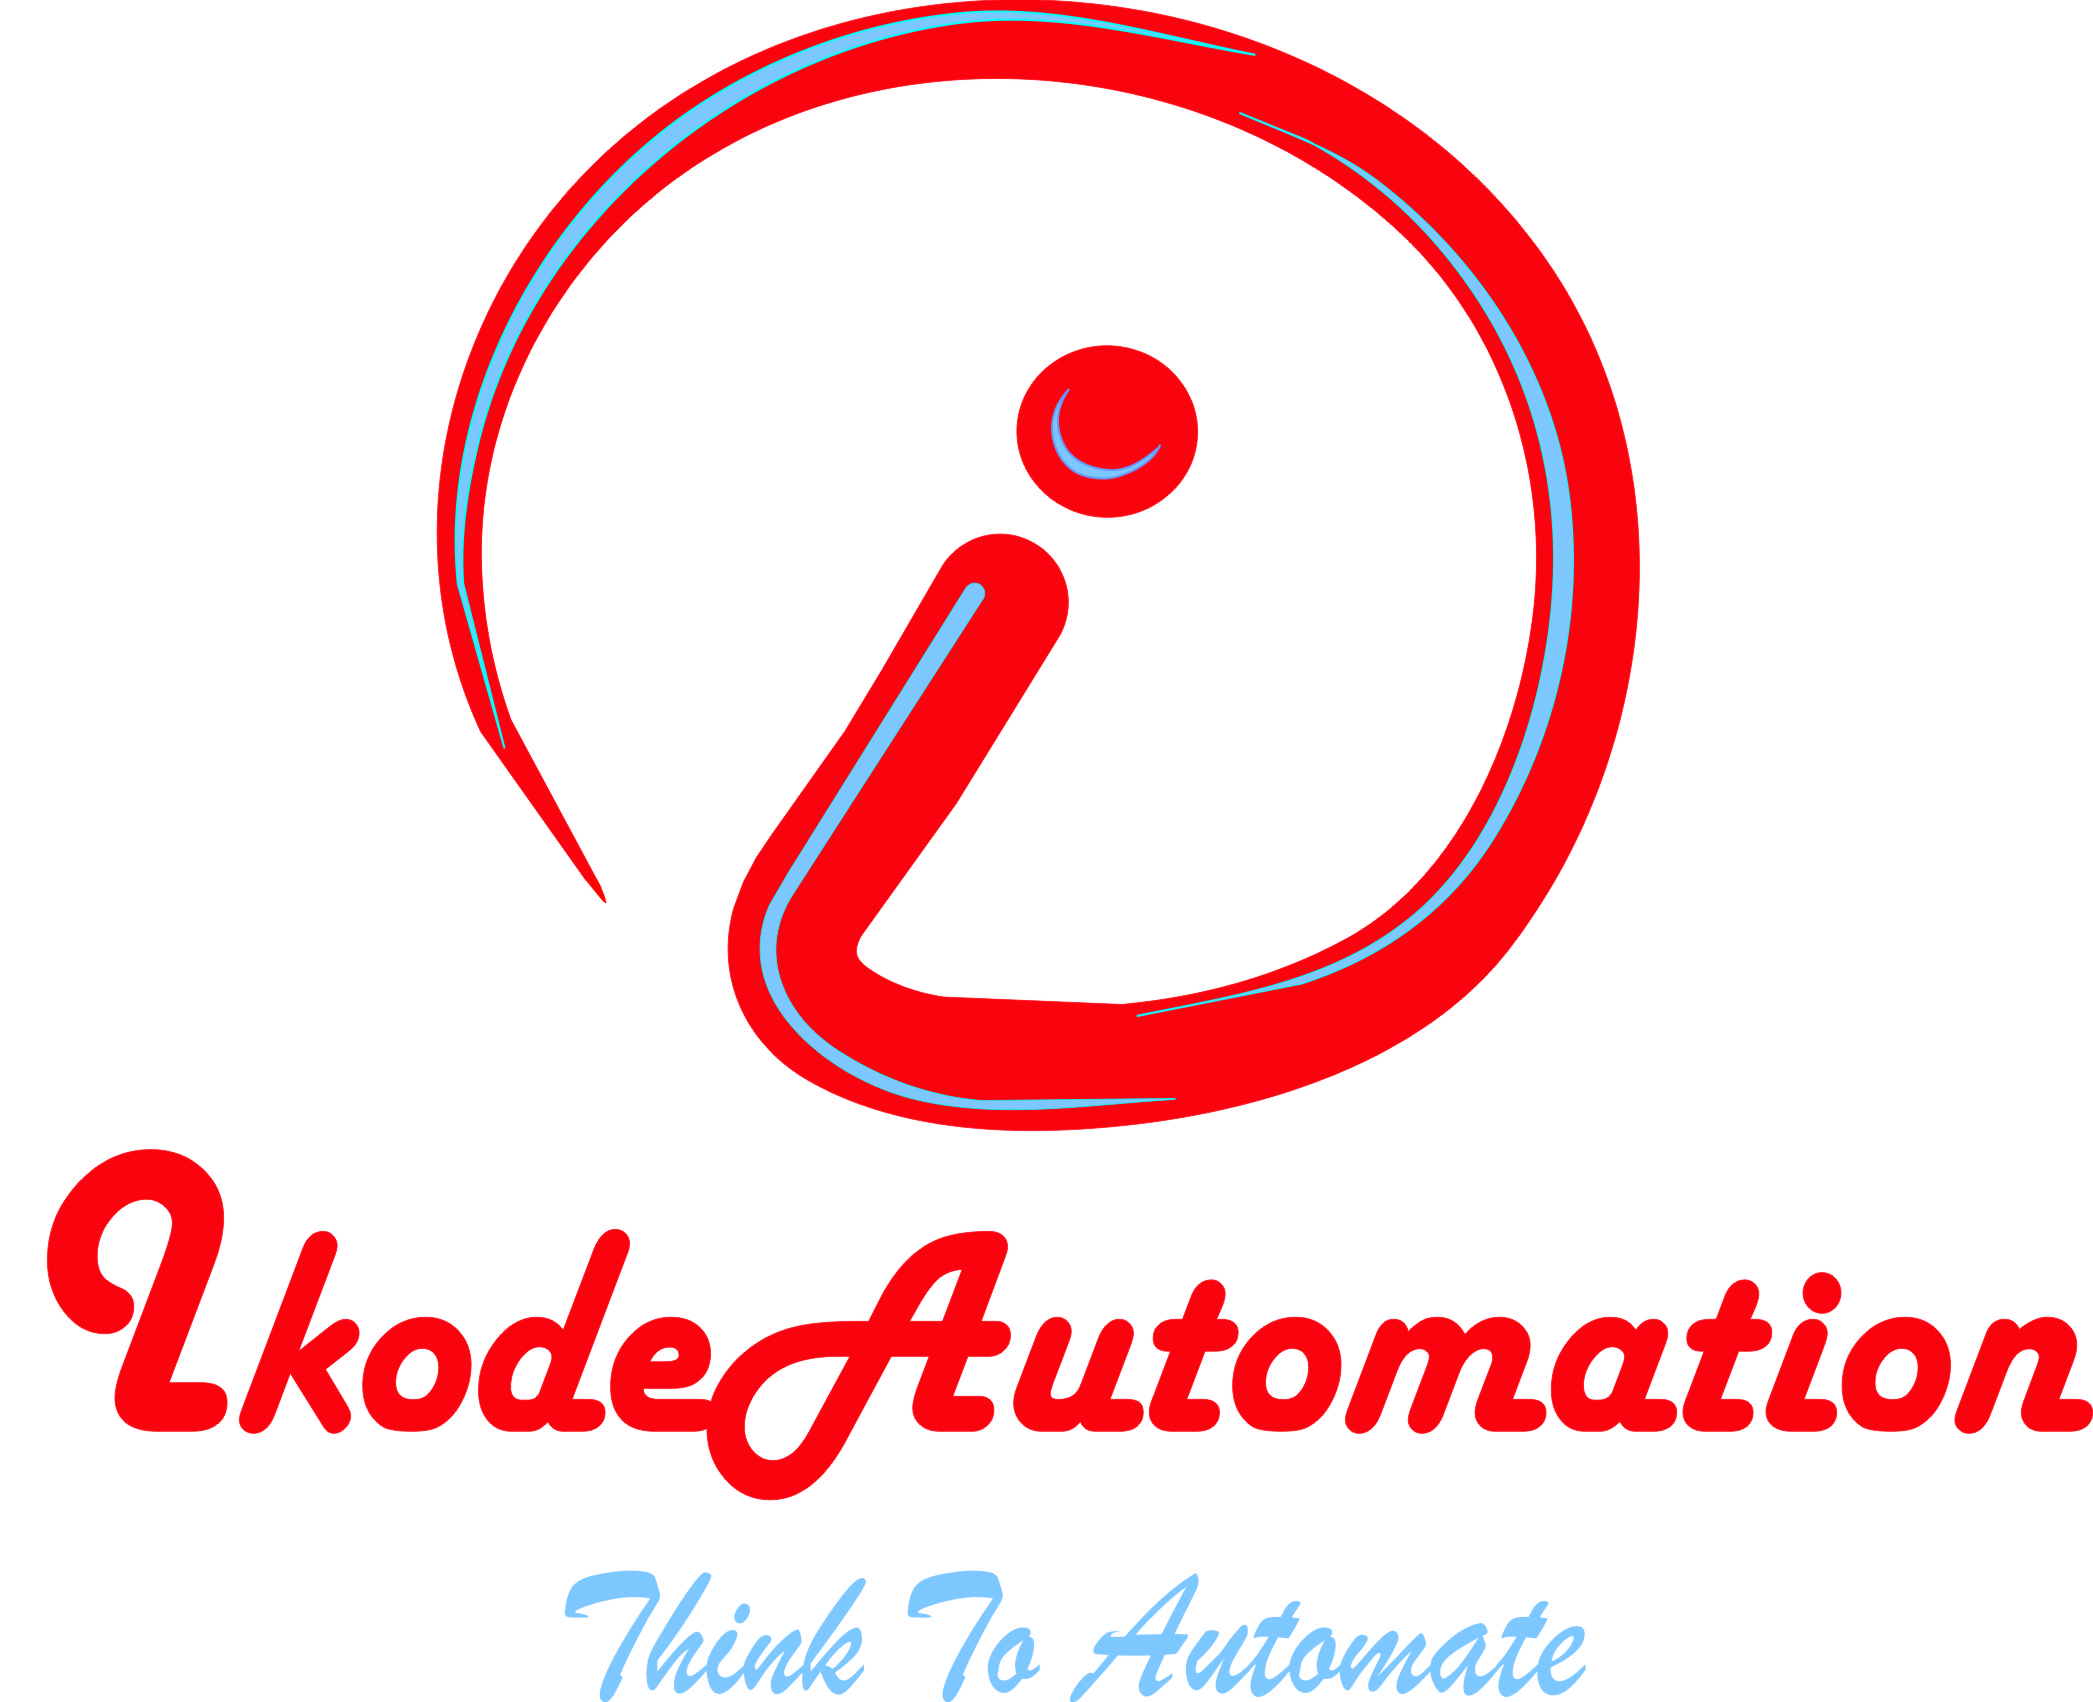 IkodeAutomation